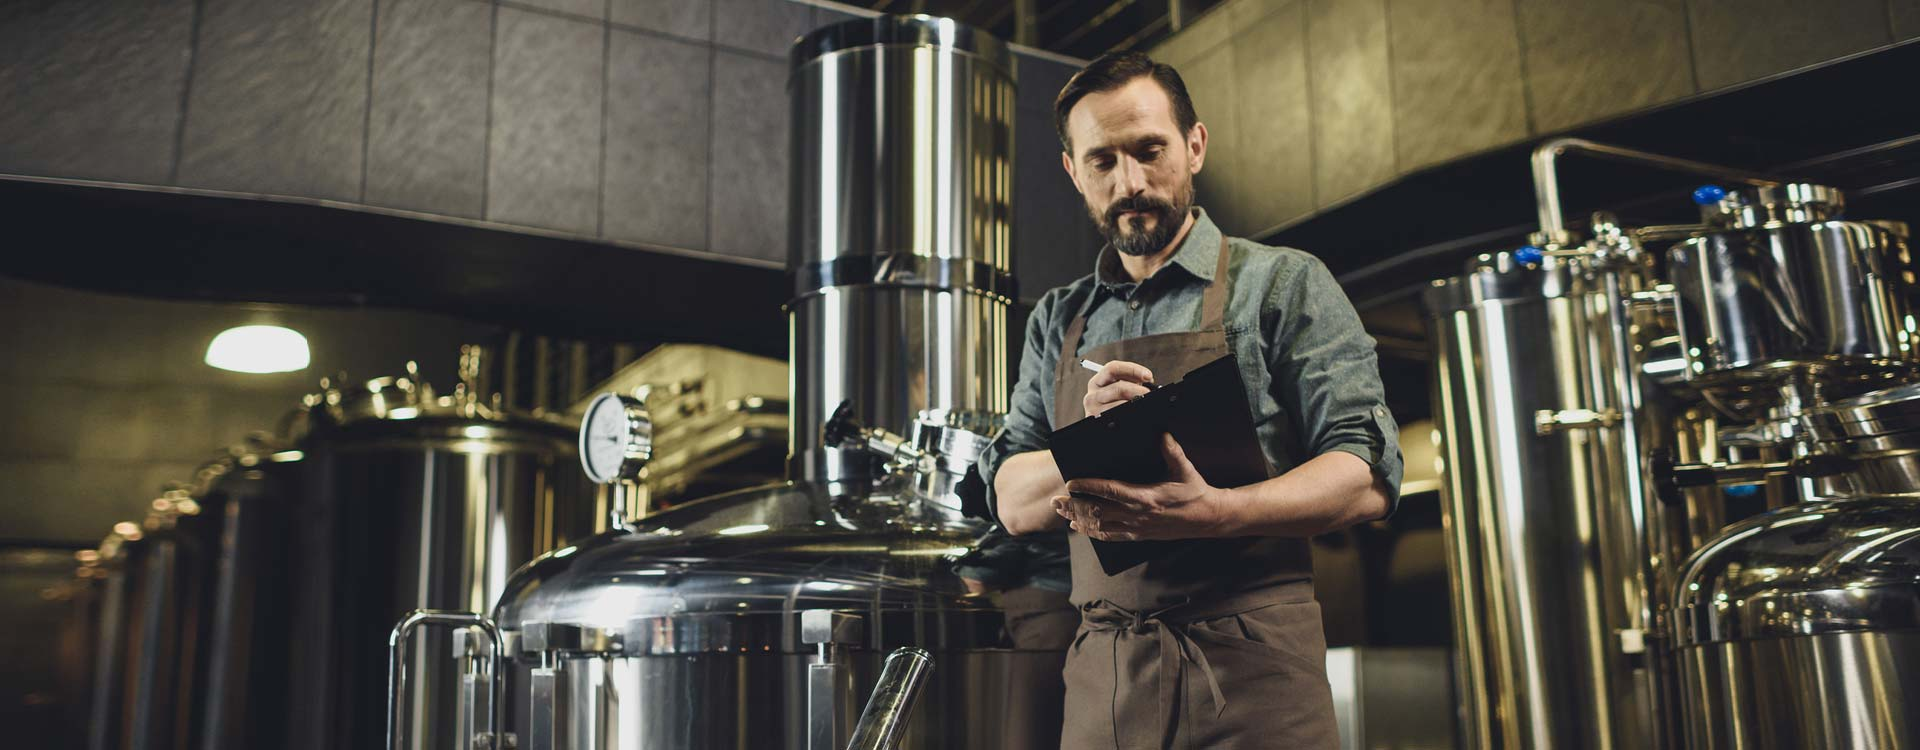 Self-brewing beer equipment safely